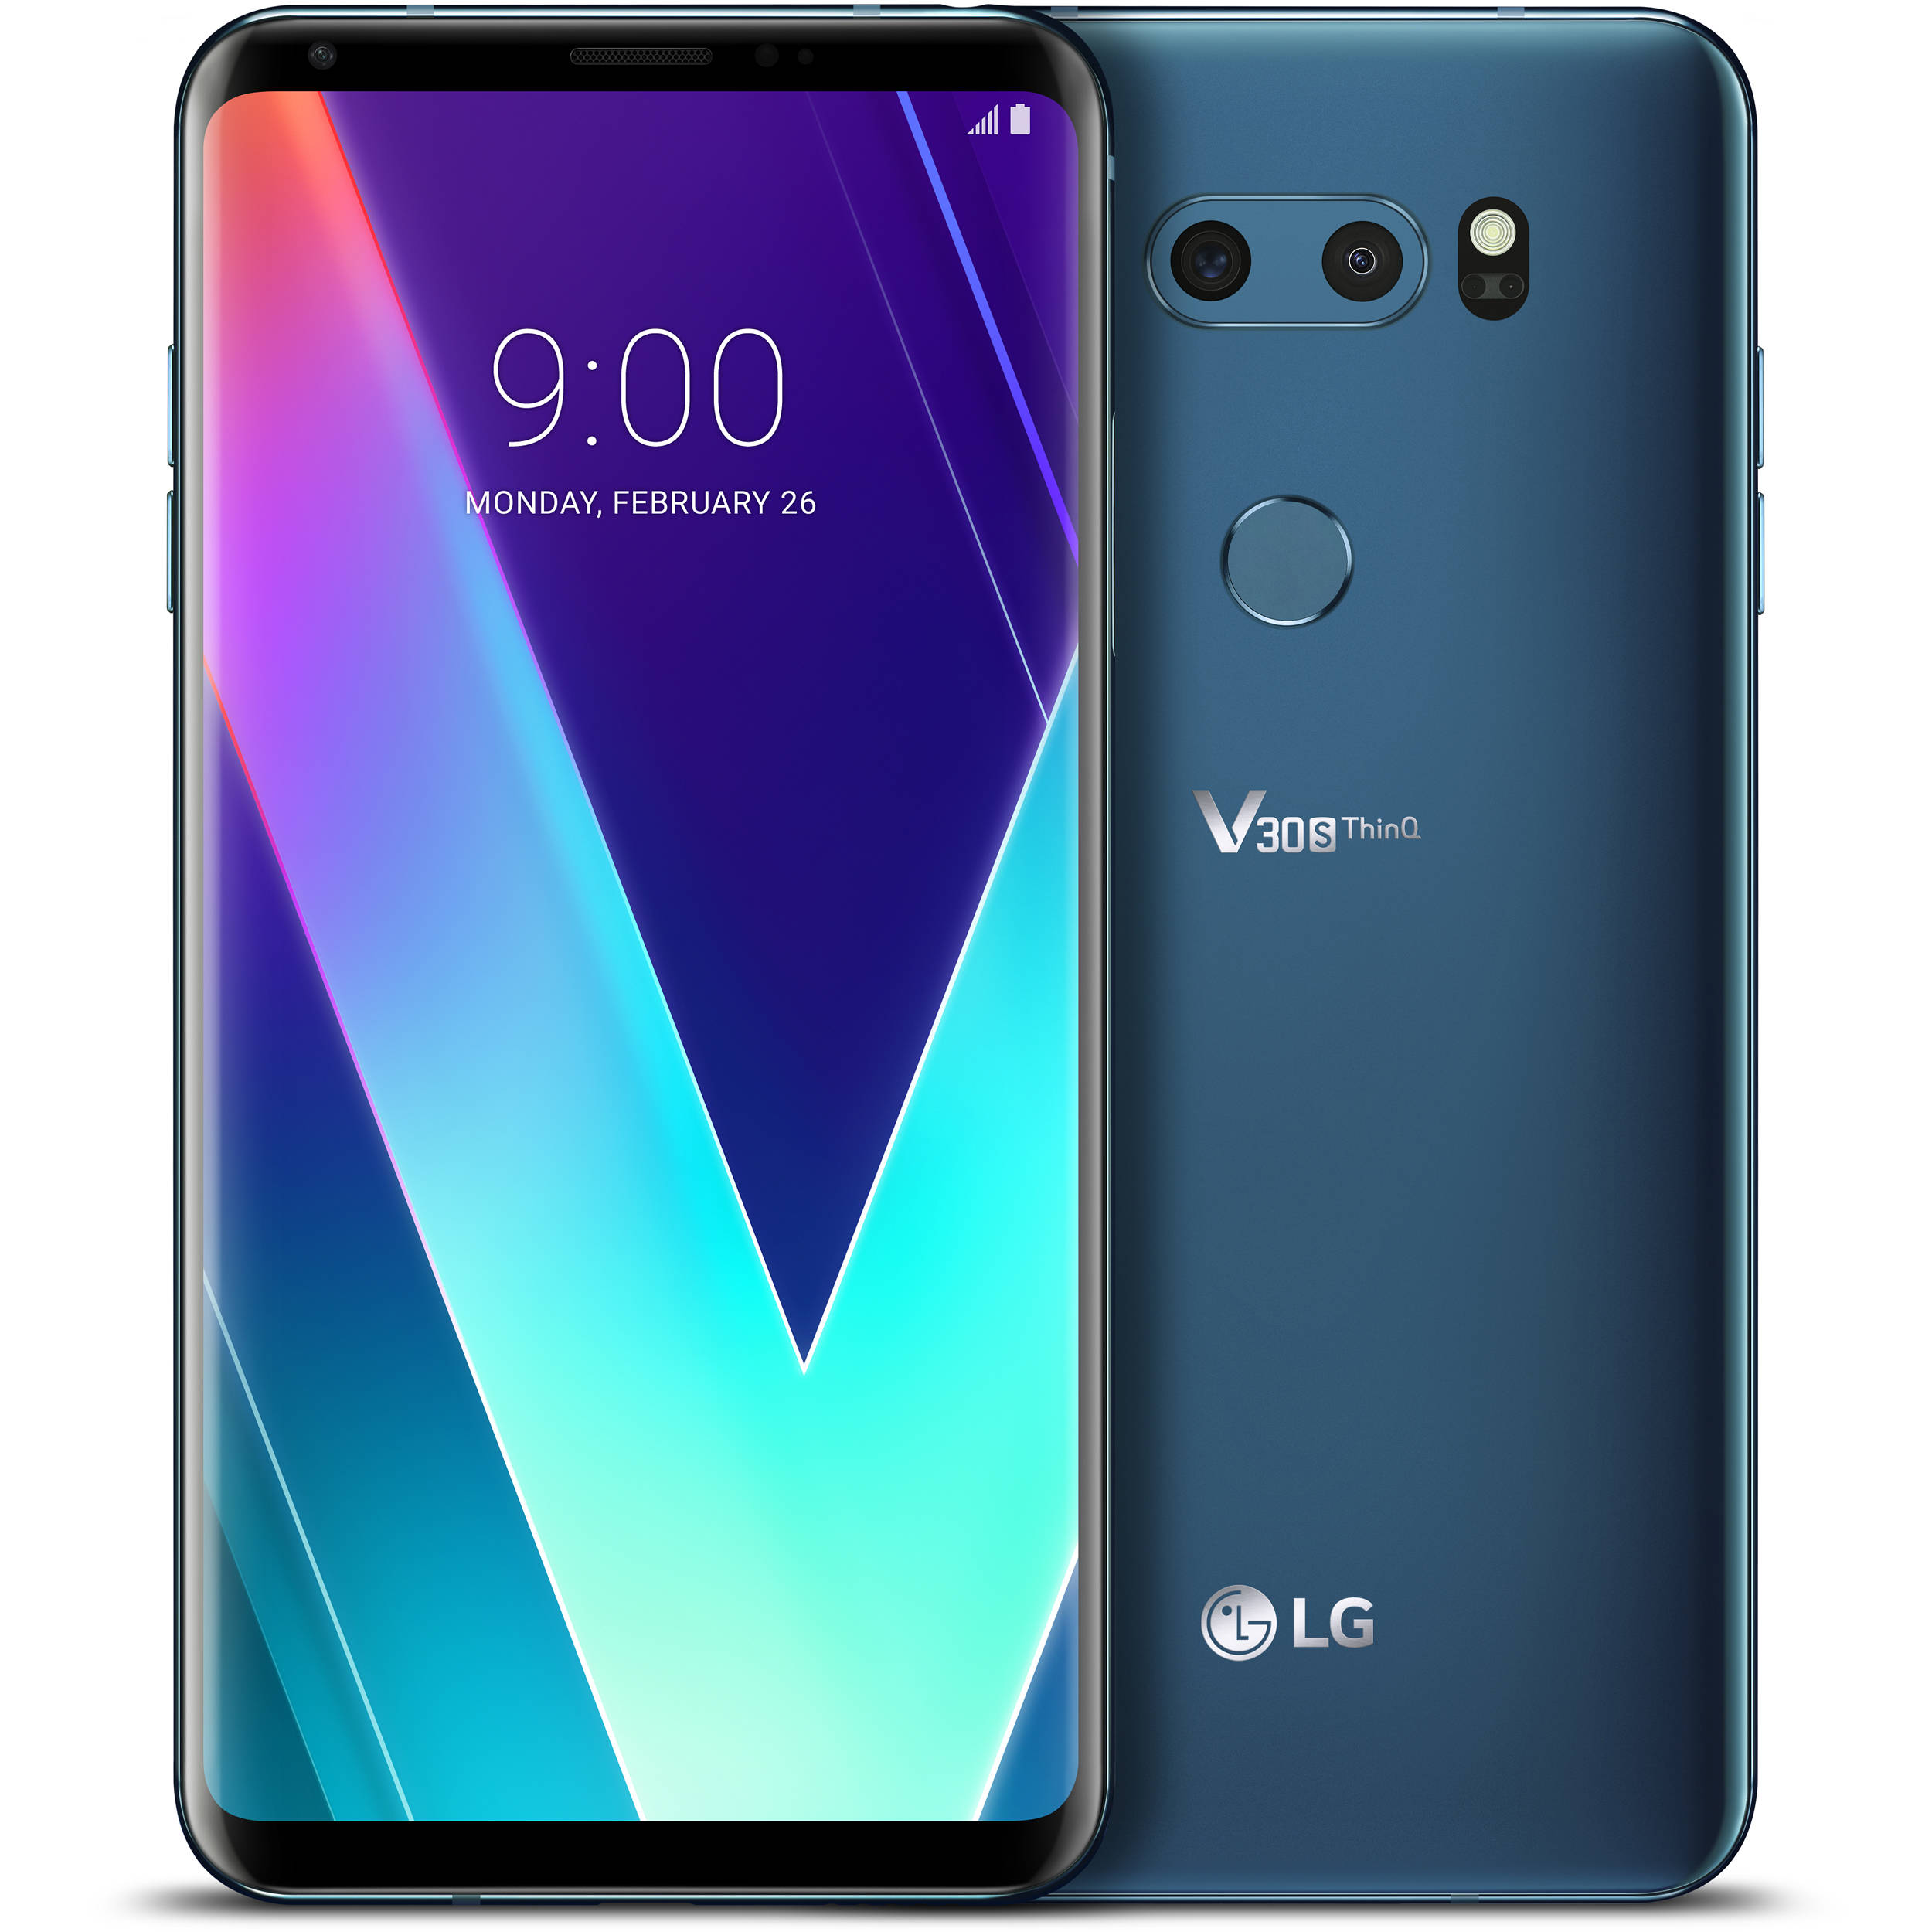 Lg V30s Thinq 128gb Smartphone Lgus998ra8usut Bh Photo Video